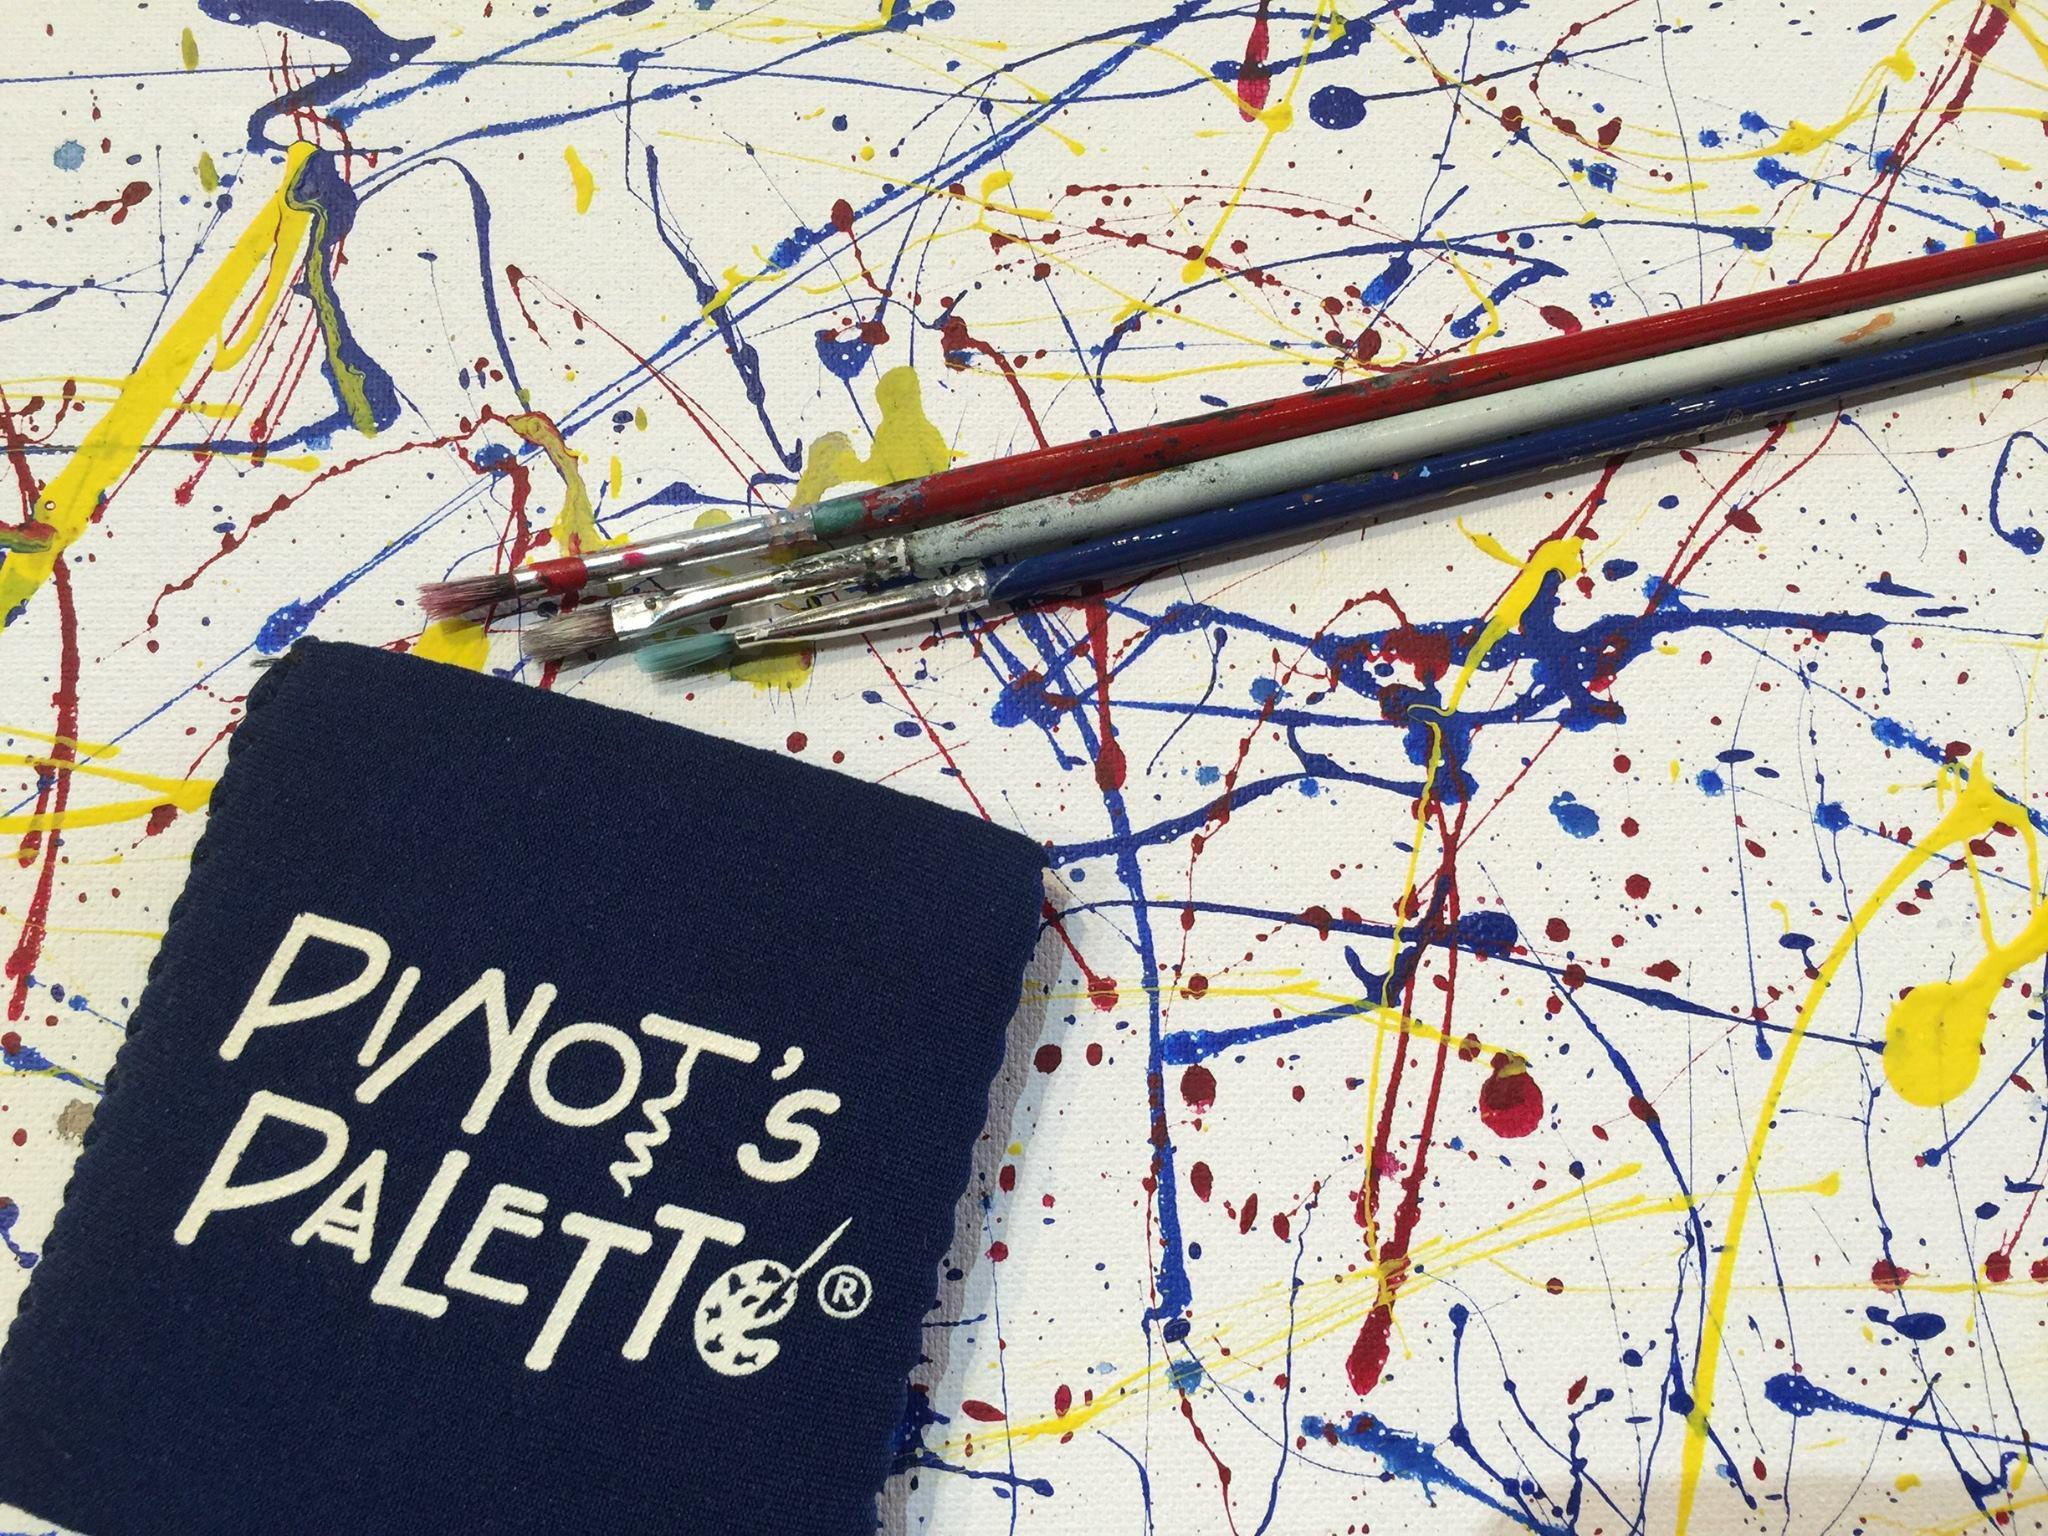 Pinot's Palette image 8